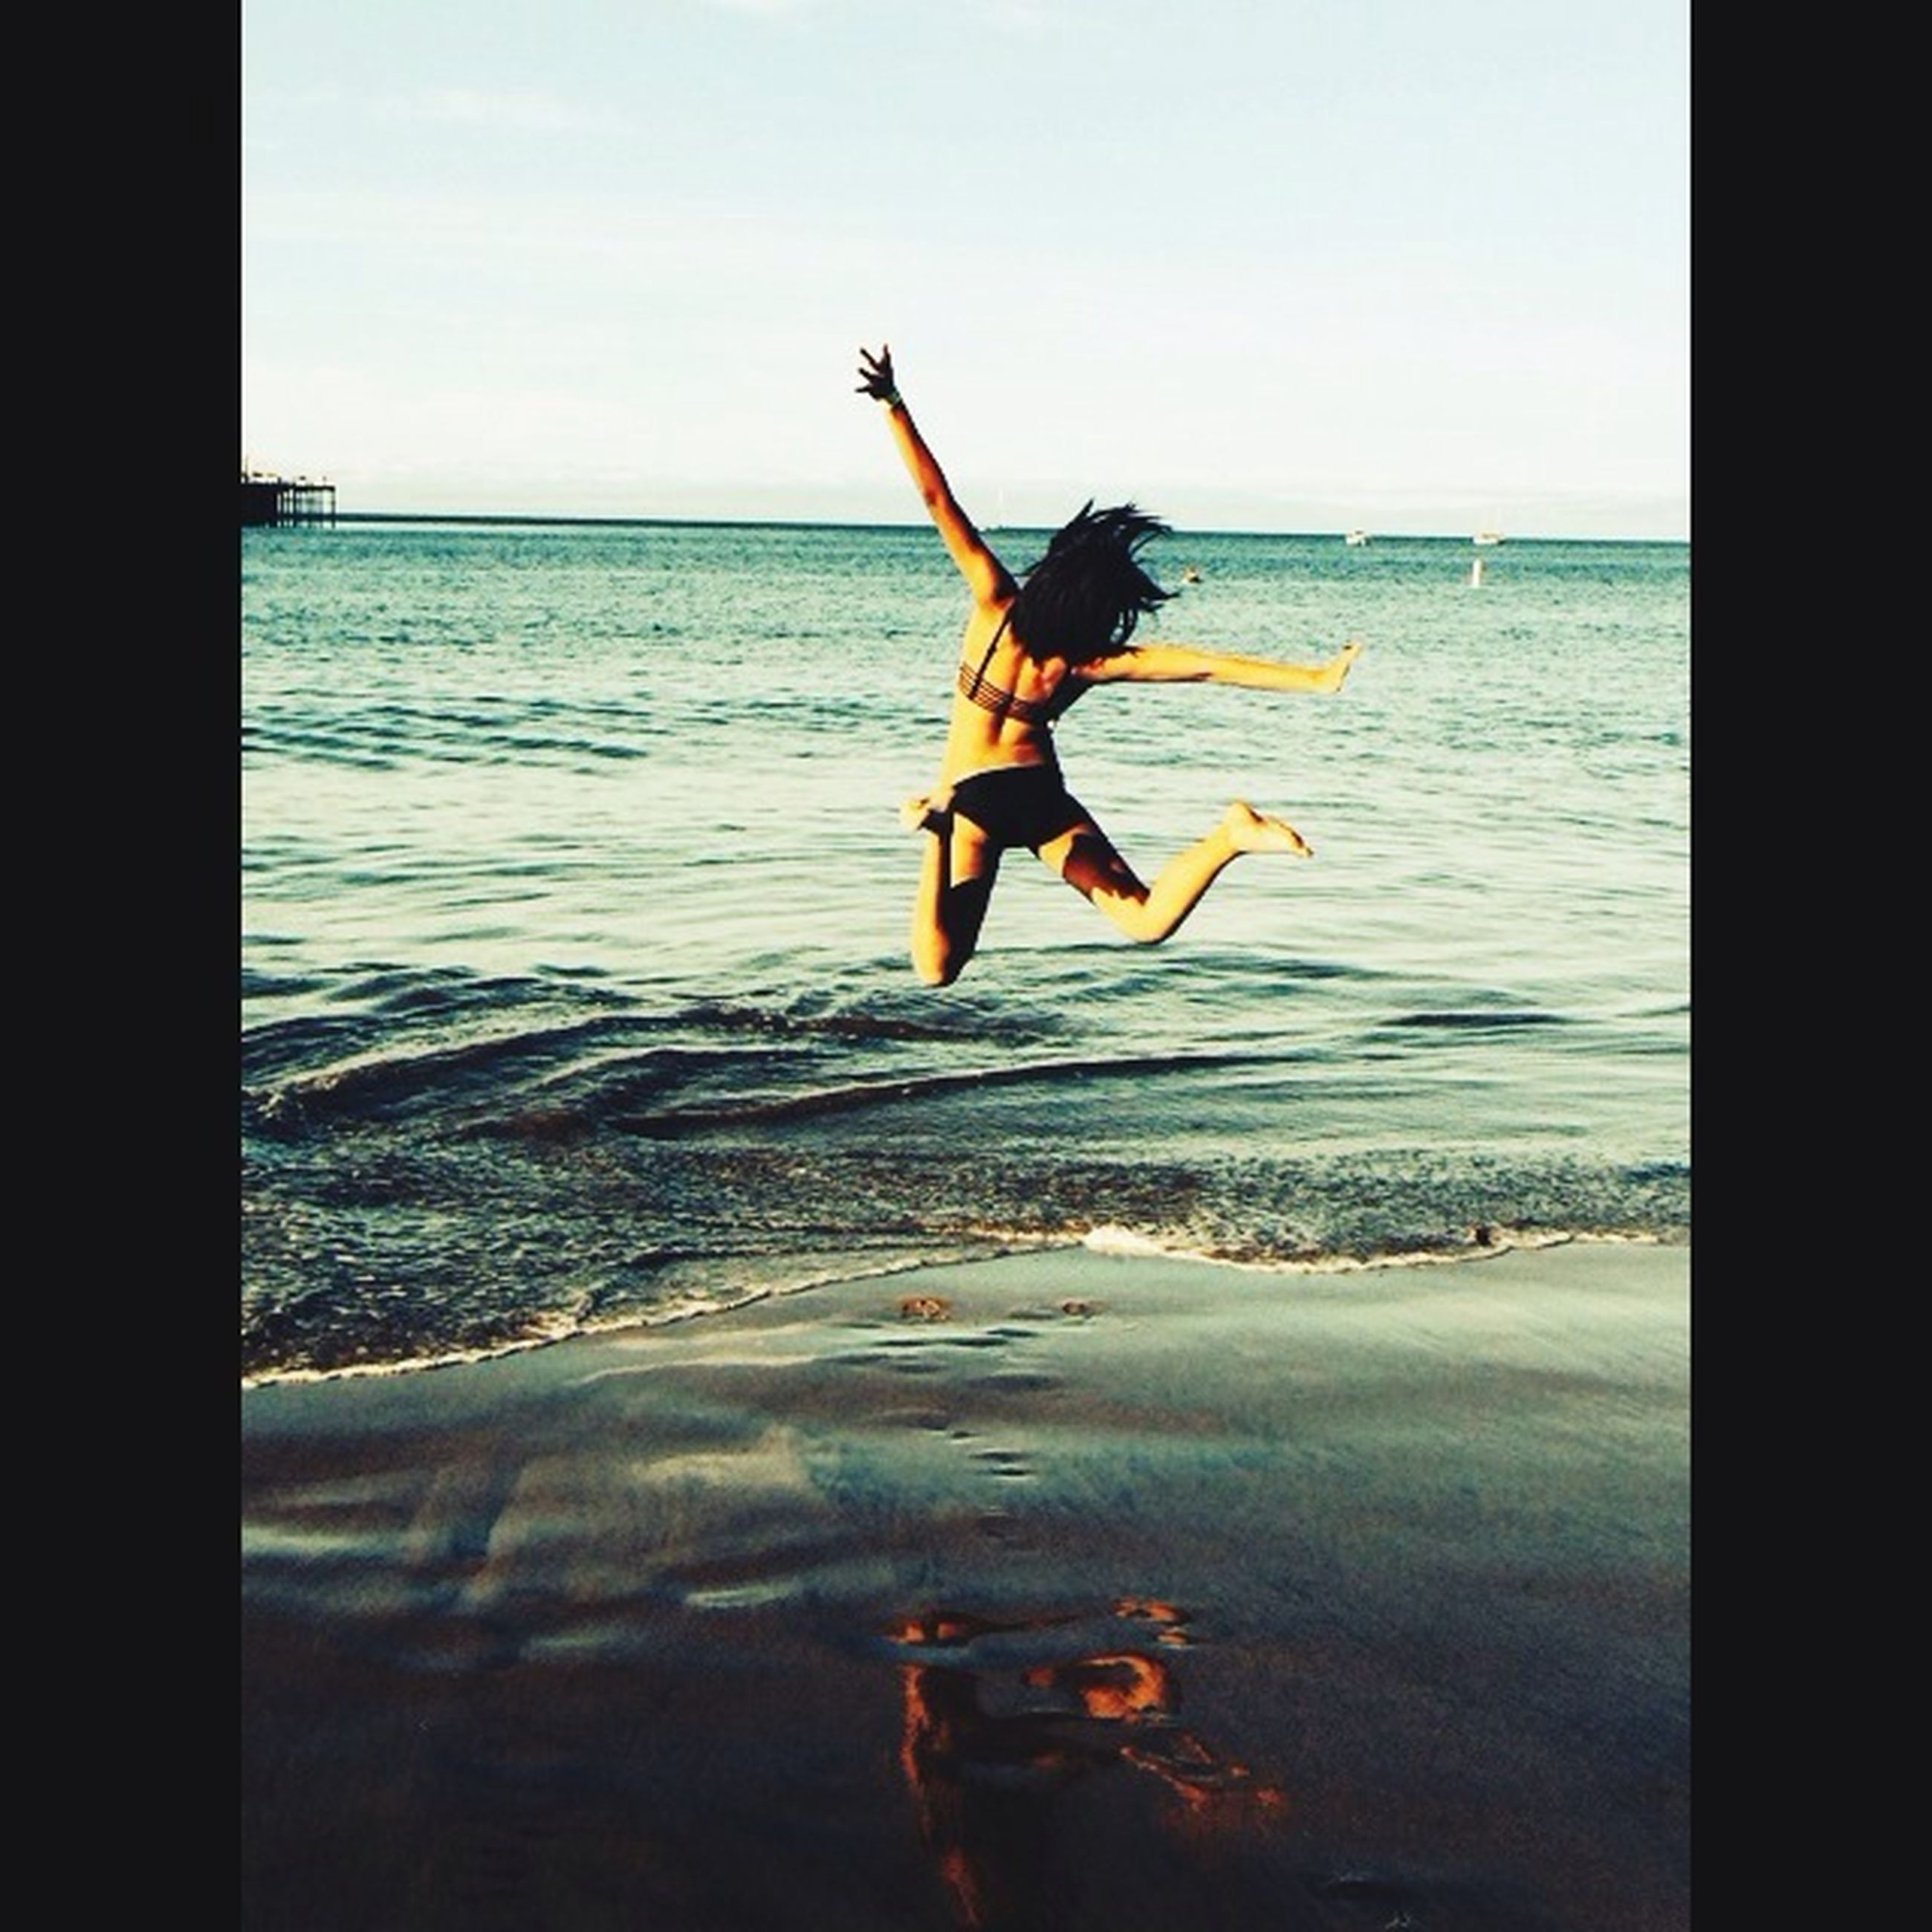 water, sea, full length, lifestyles, leisure activity, jumping, mid-air, enjoyment, horizon over water, fun, arms outstretched, vacations, vitality, motion, freedom, sky, carefree, skill